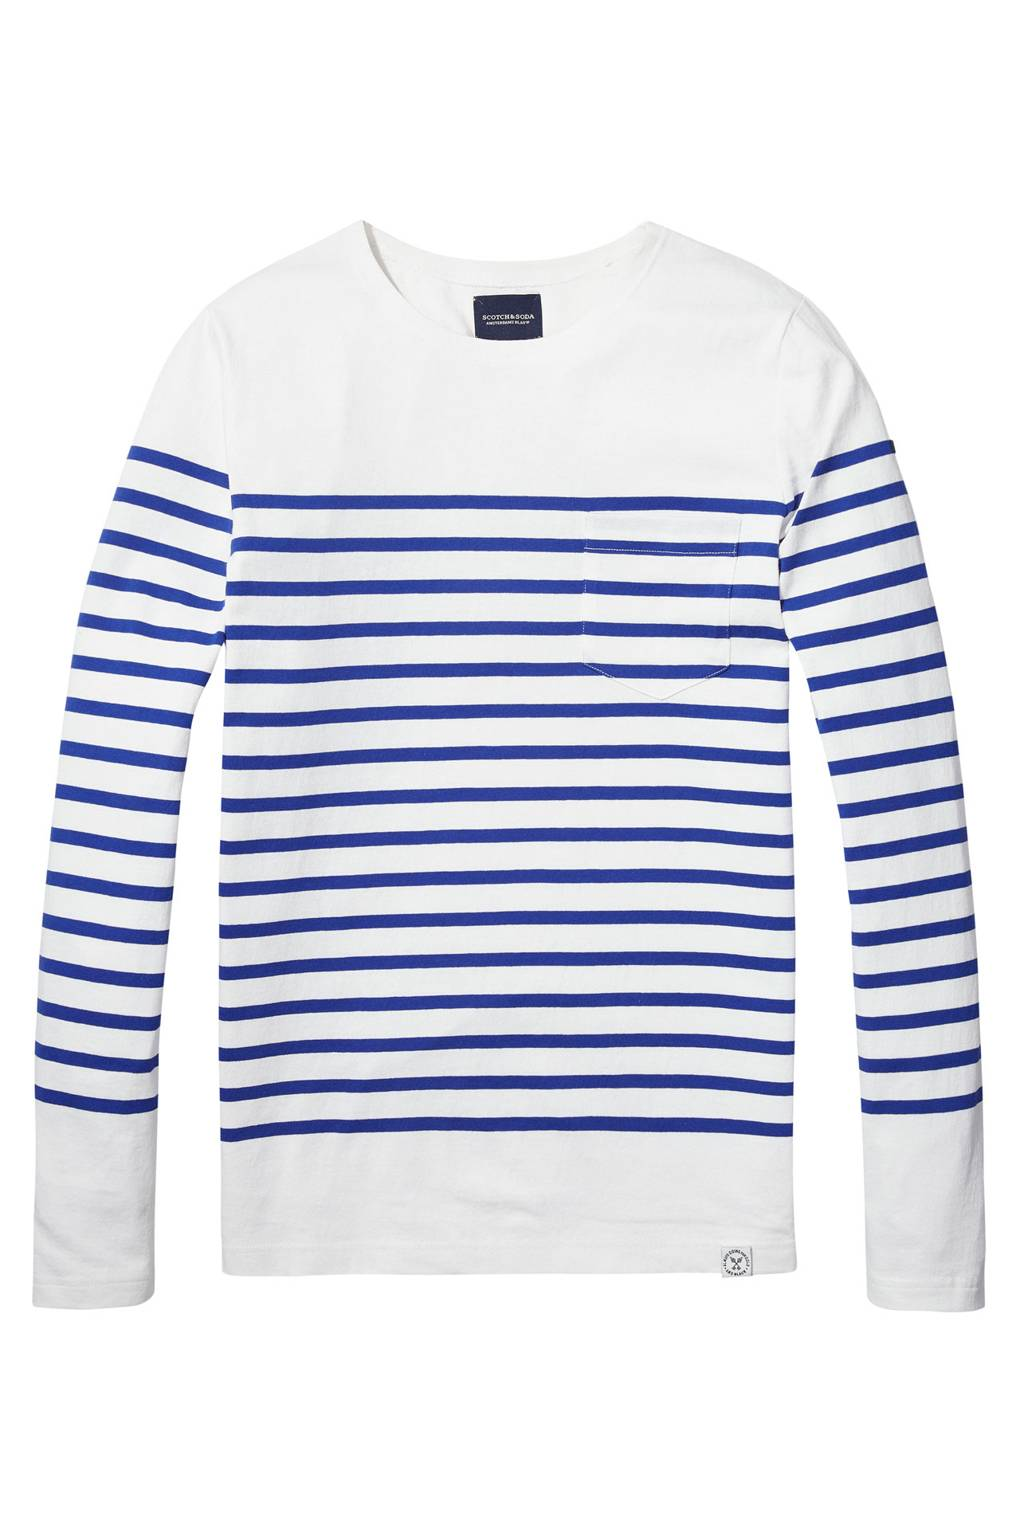 9e765d714b This summer's best Breton shirts | British GQ